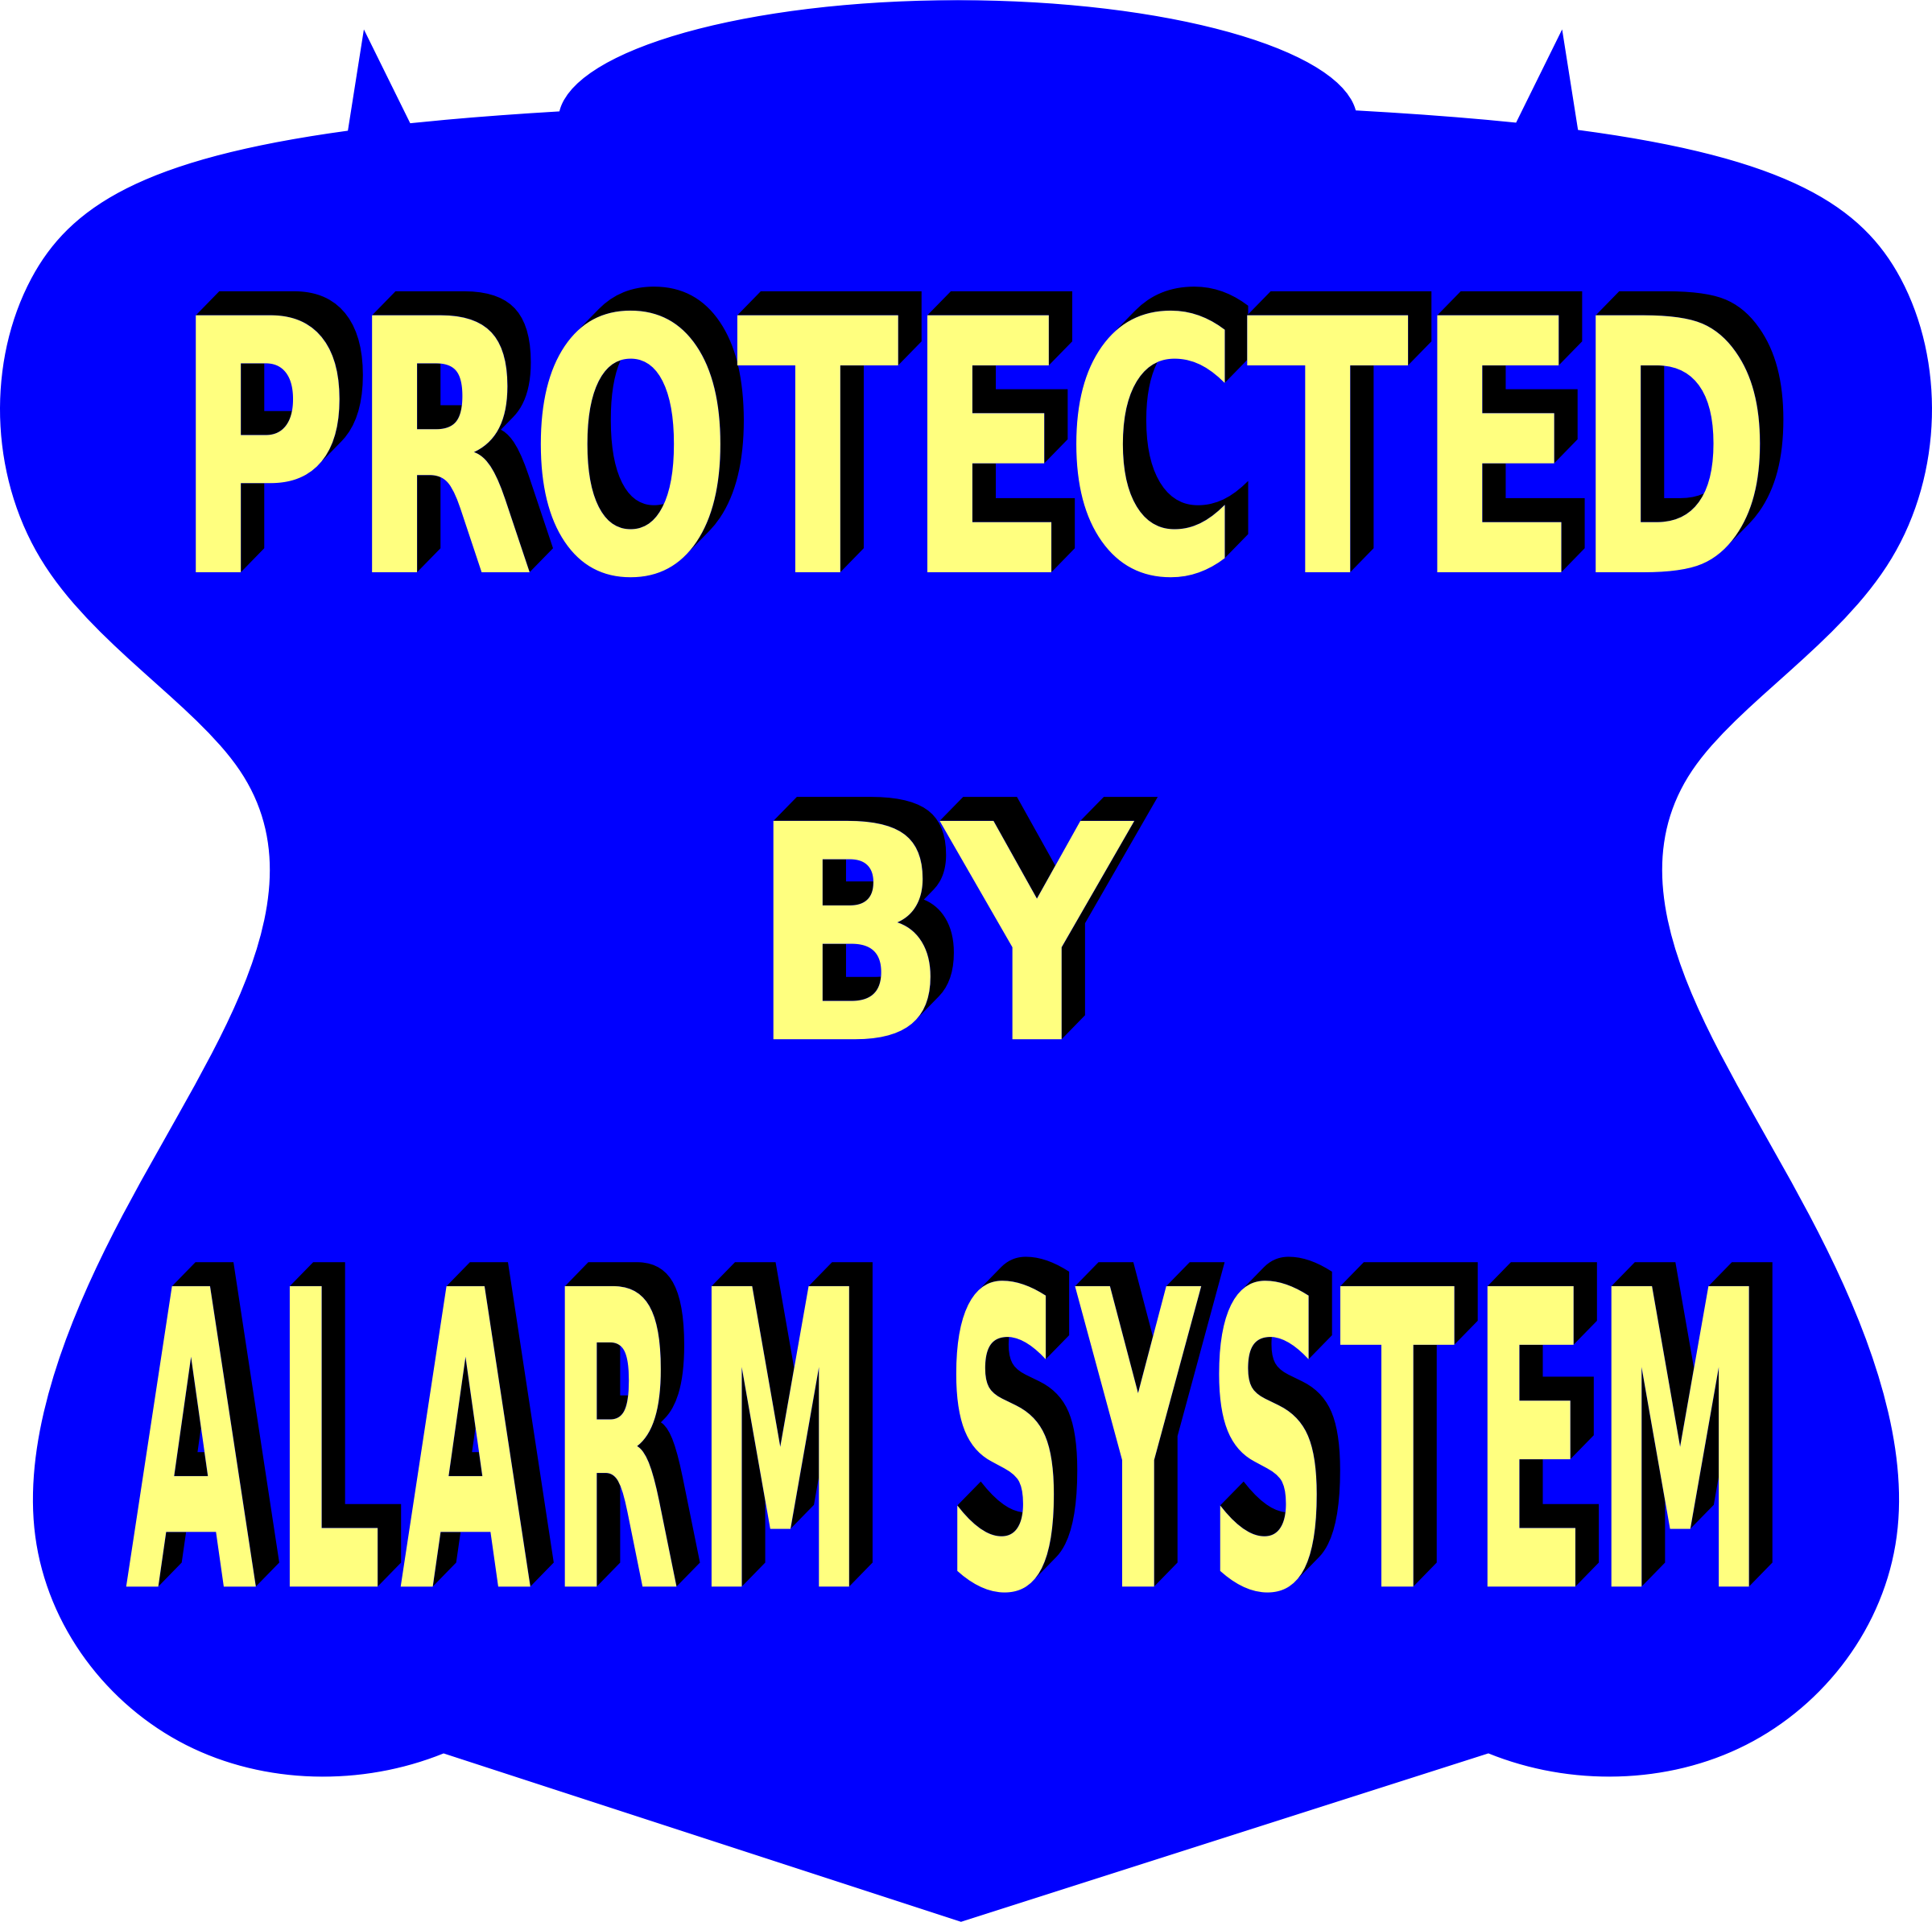 Protected by Alarm system sign 2 by bobby520